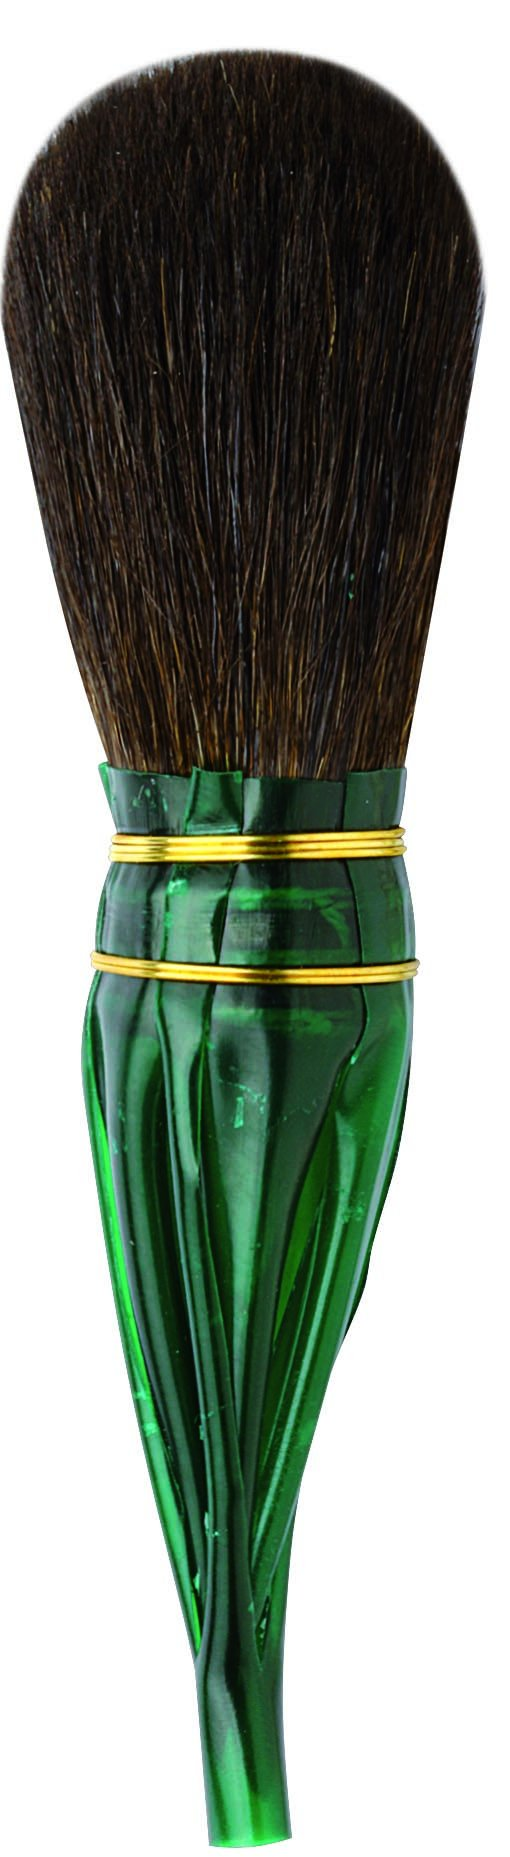 da Vinci Gilding Series 710 Double Quill Gilder Mop, Oval Blue Squirrel Hair, Size 20